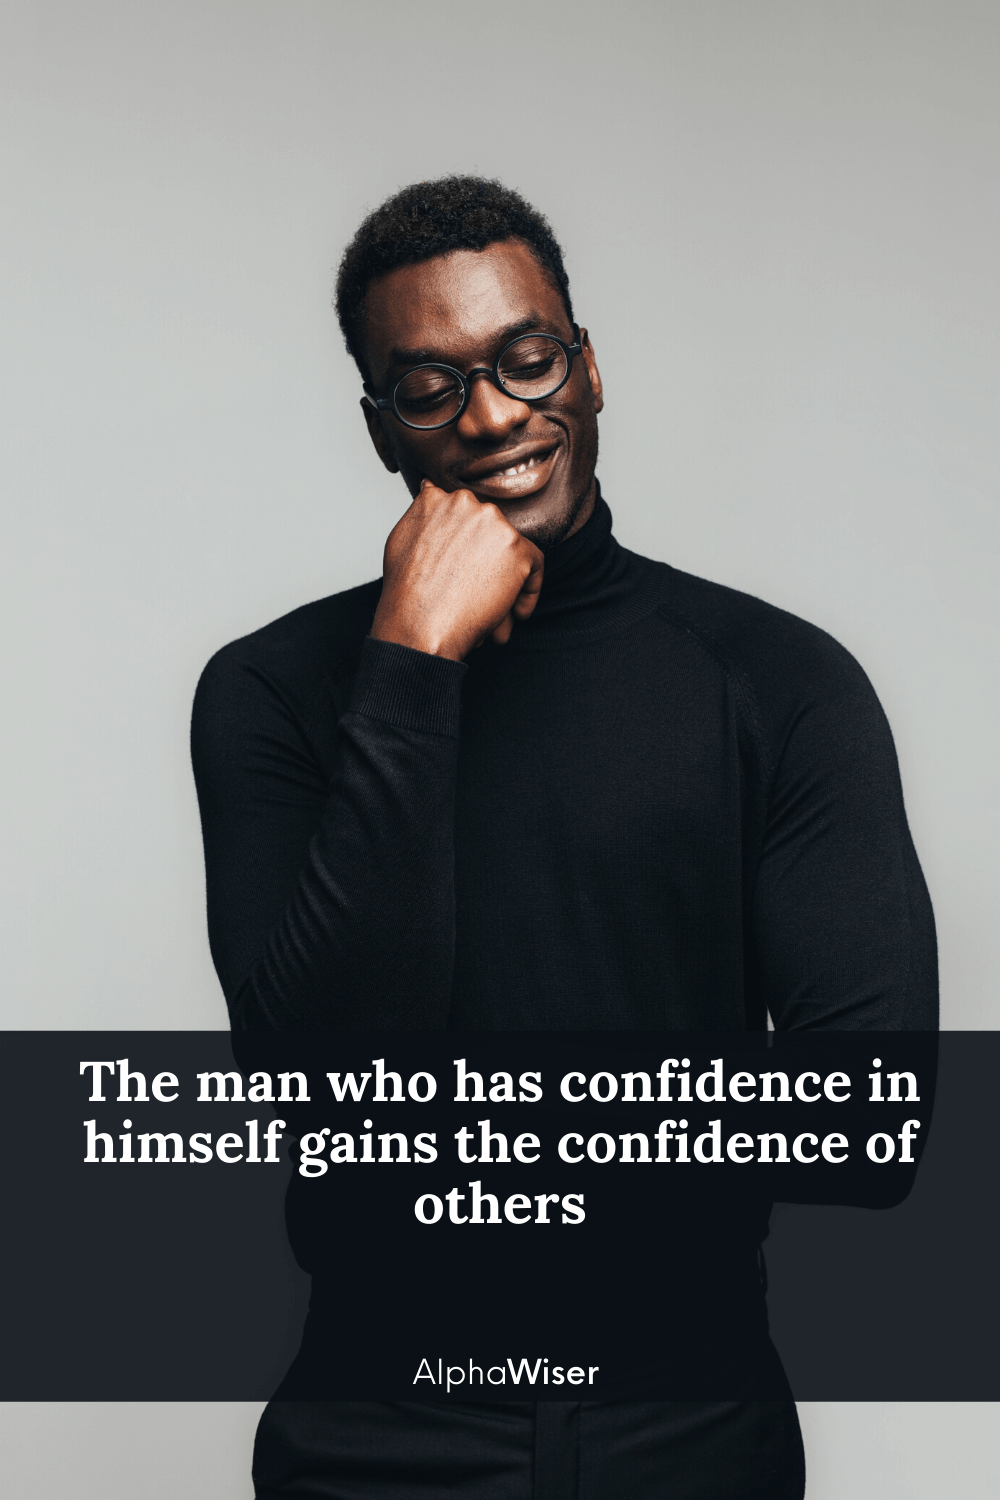 The-man-who-has-confidence-in-himself-gains-the-confidence-of-others